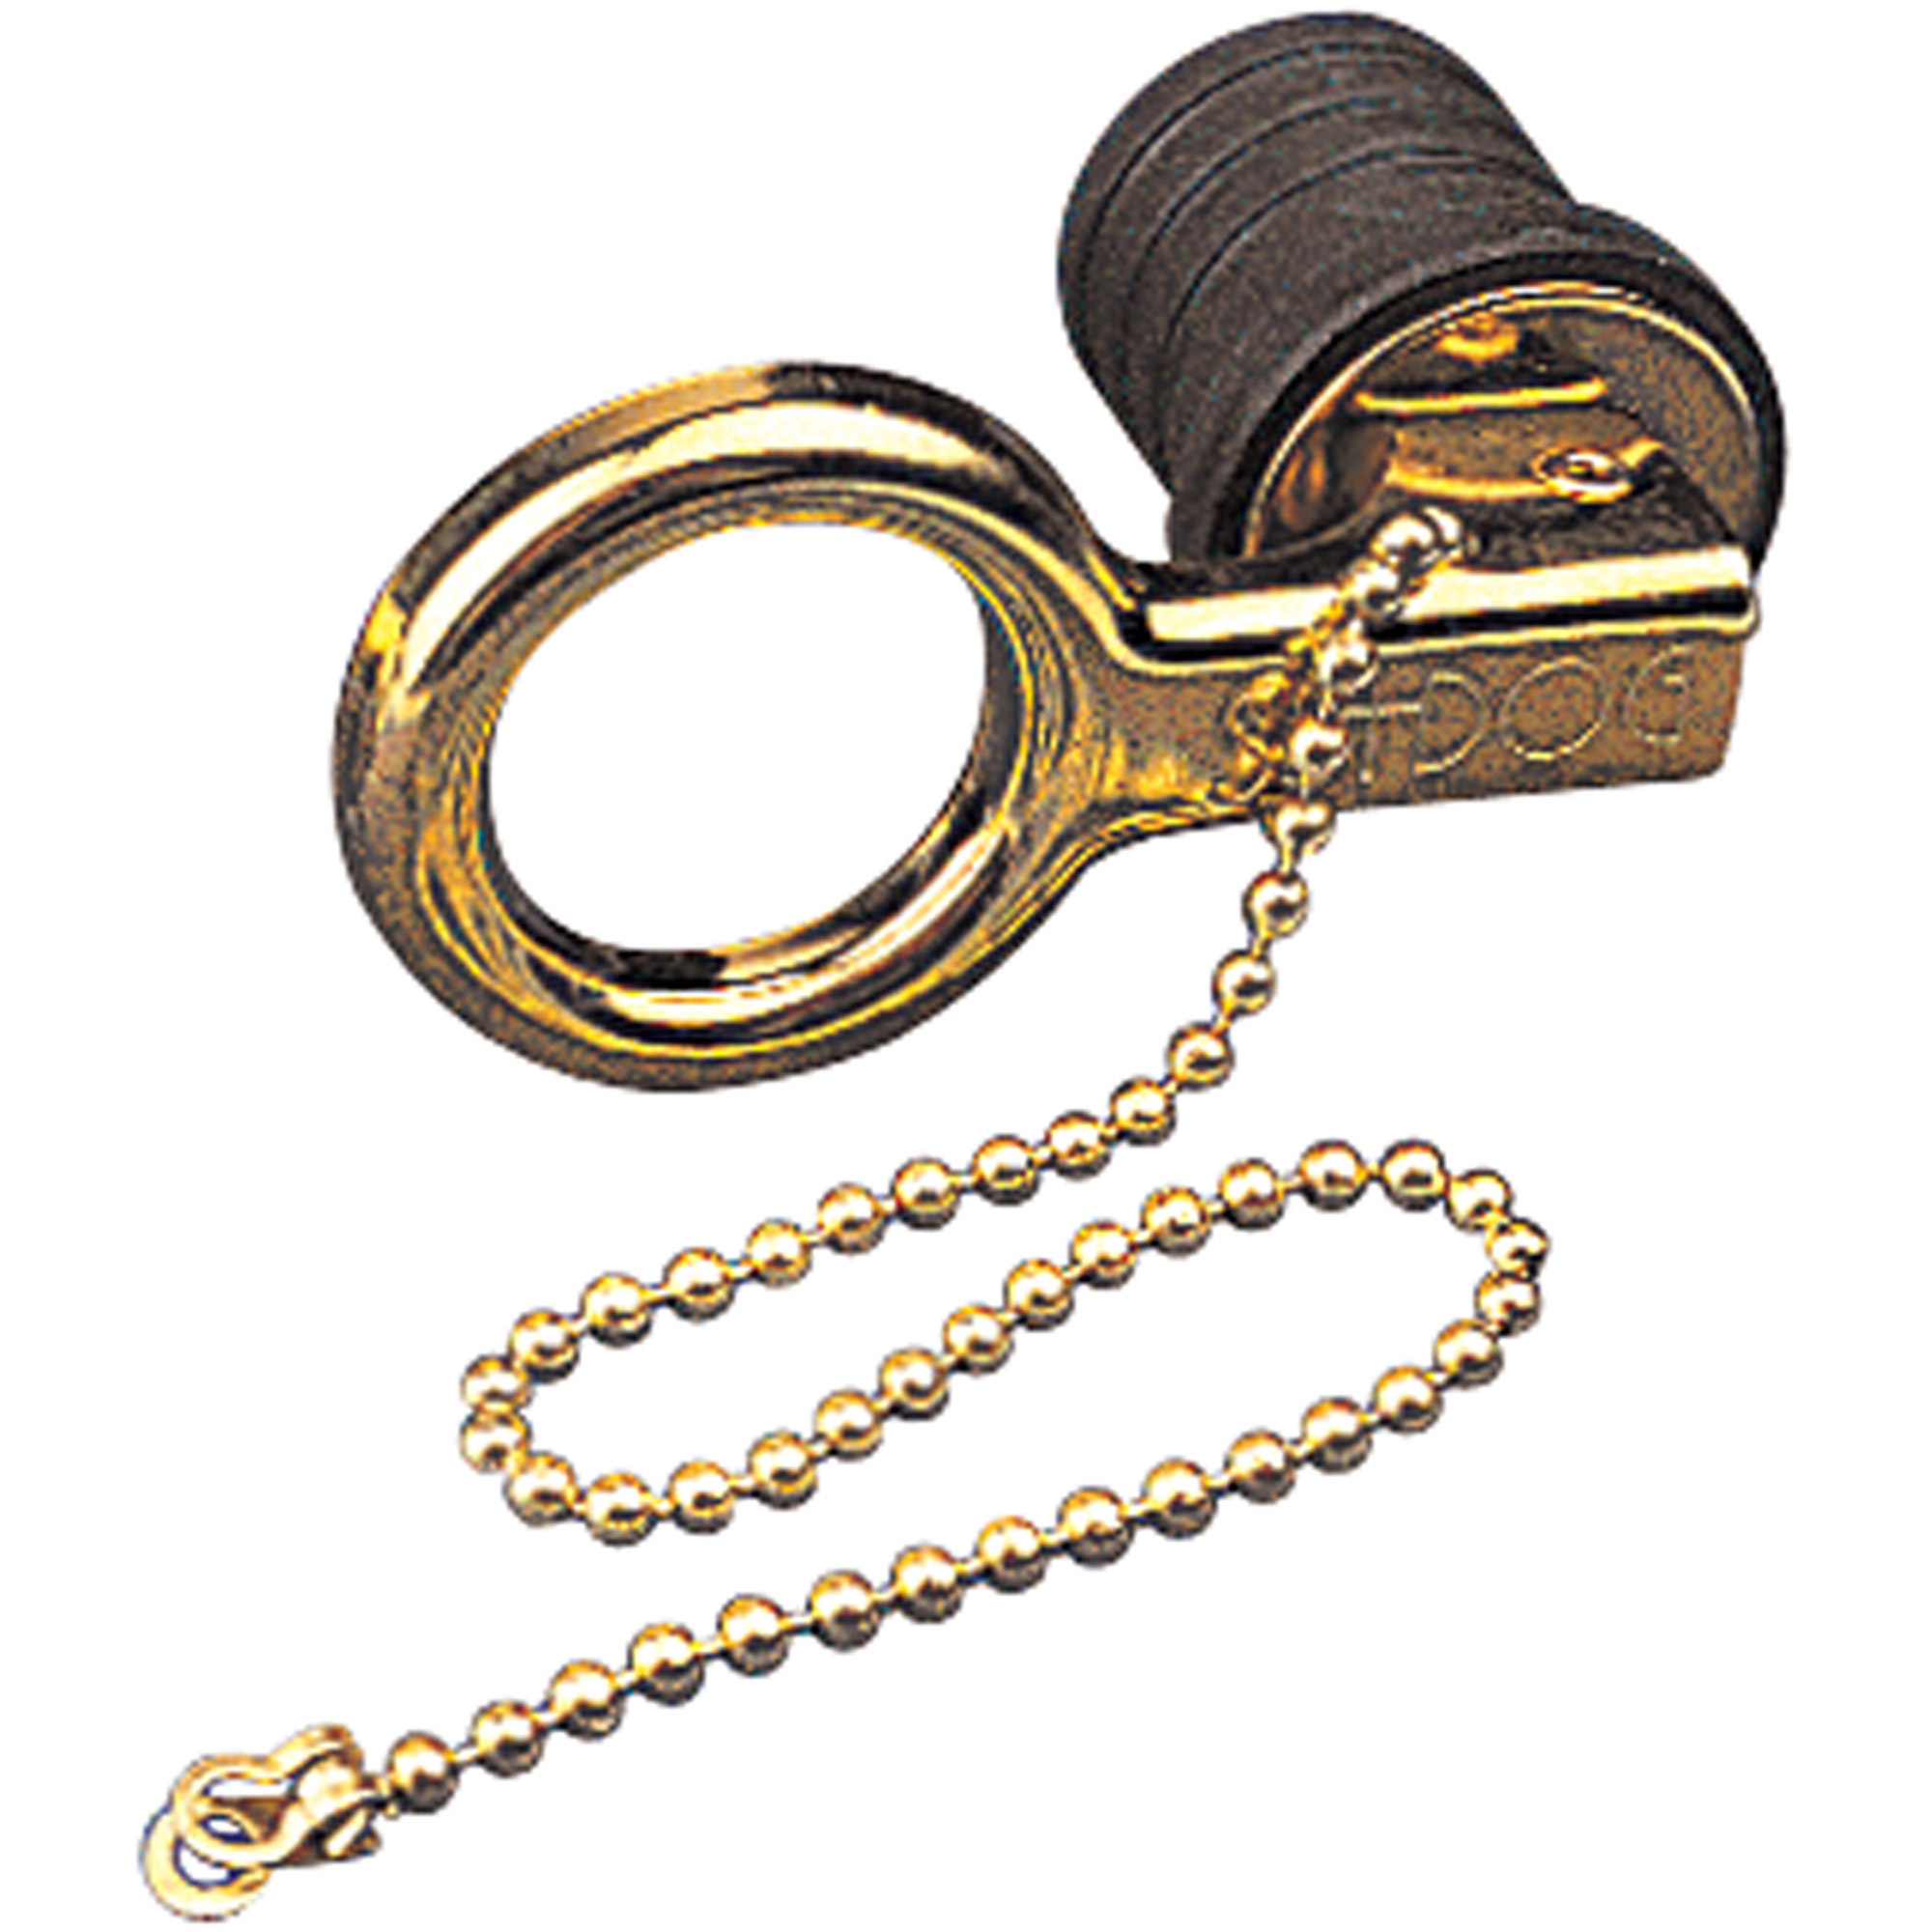 Sea Dog Snap Handle Drain Plug with Safety Chain, Brass